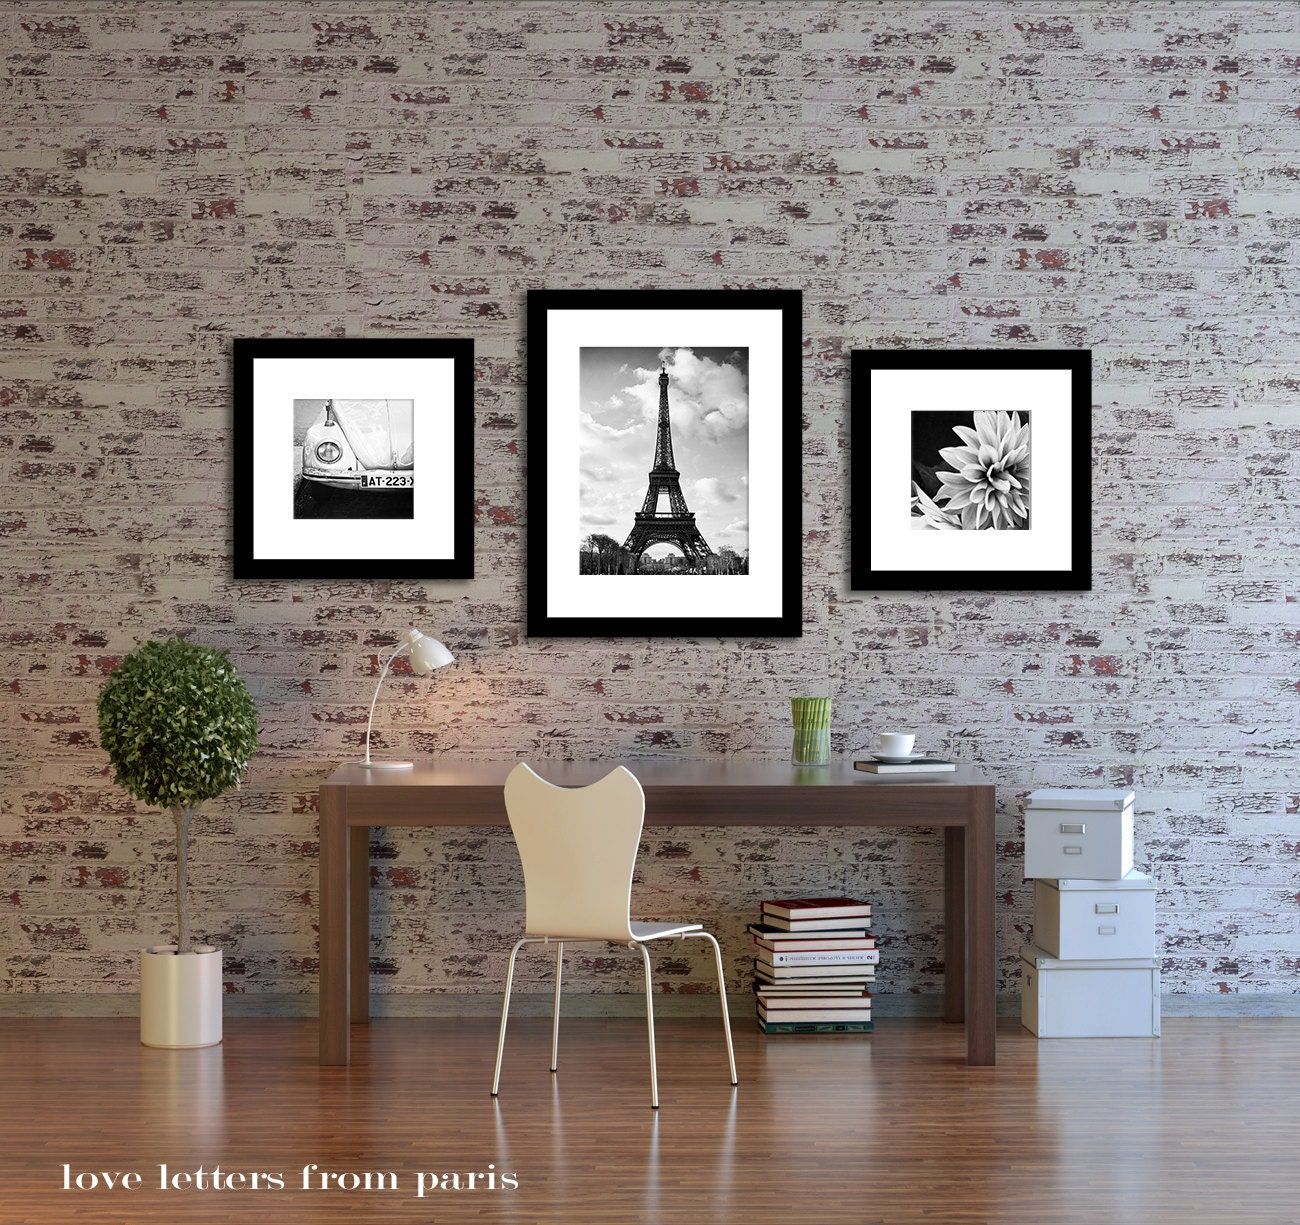 Paris photograph home decor paris wall art paris decor for Wall accessories